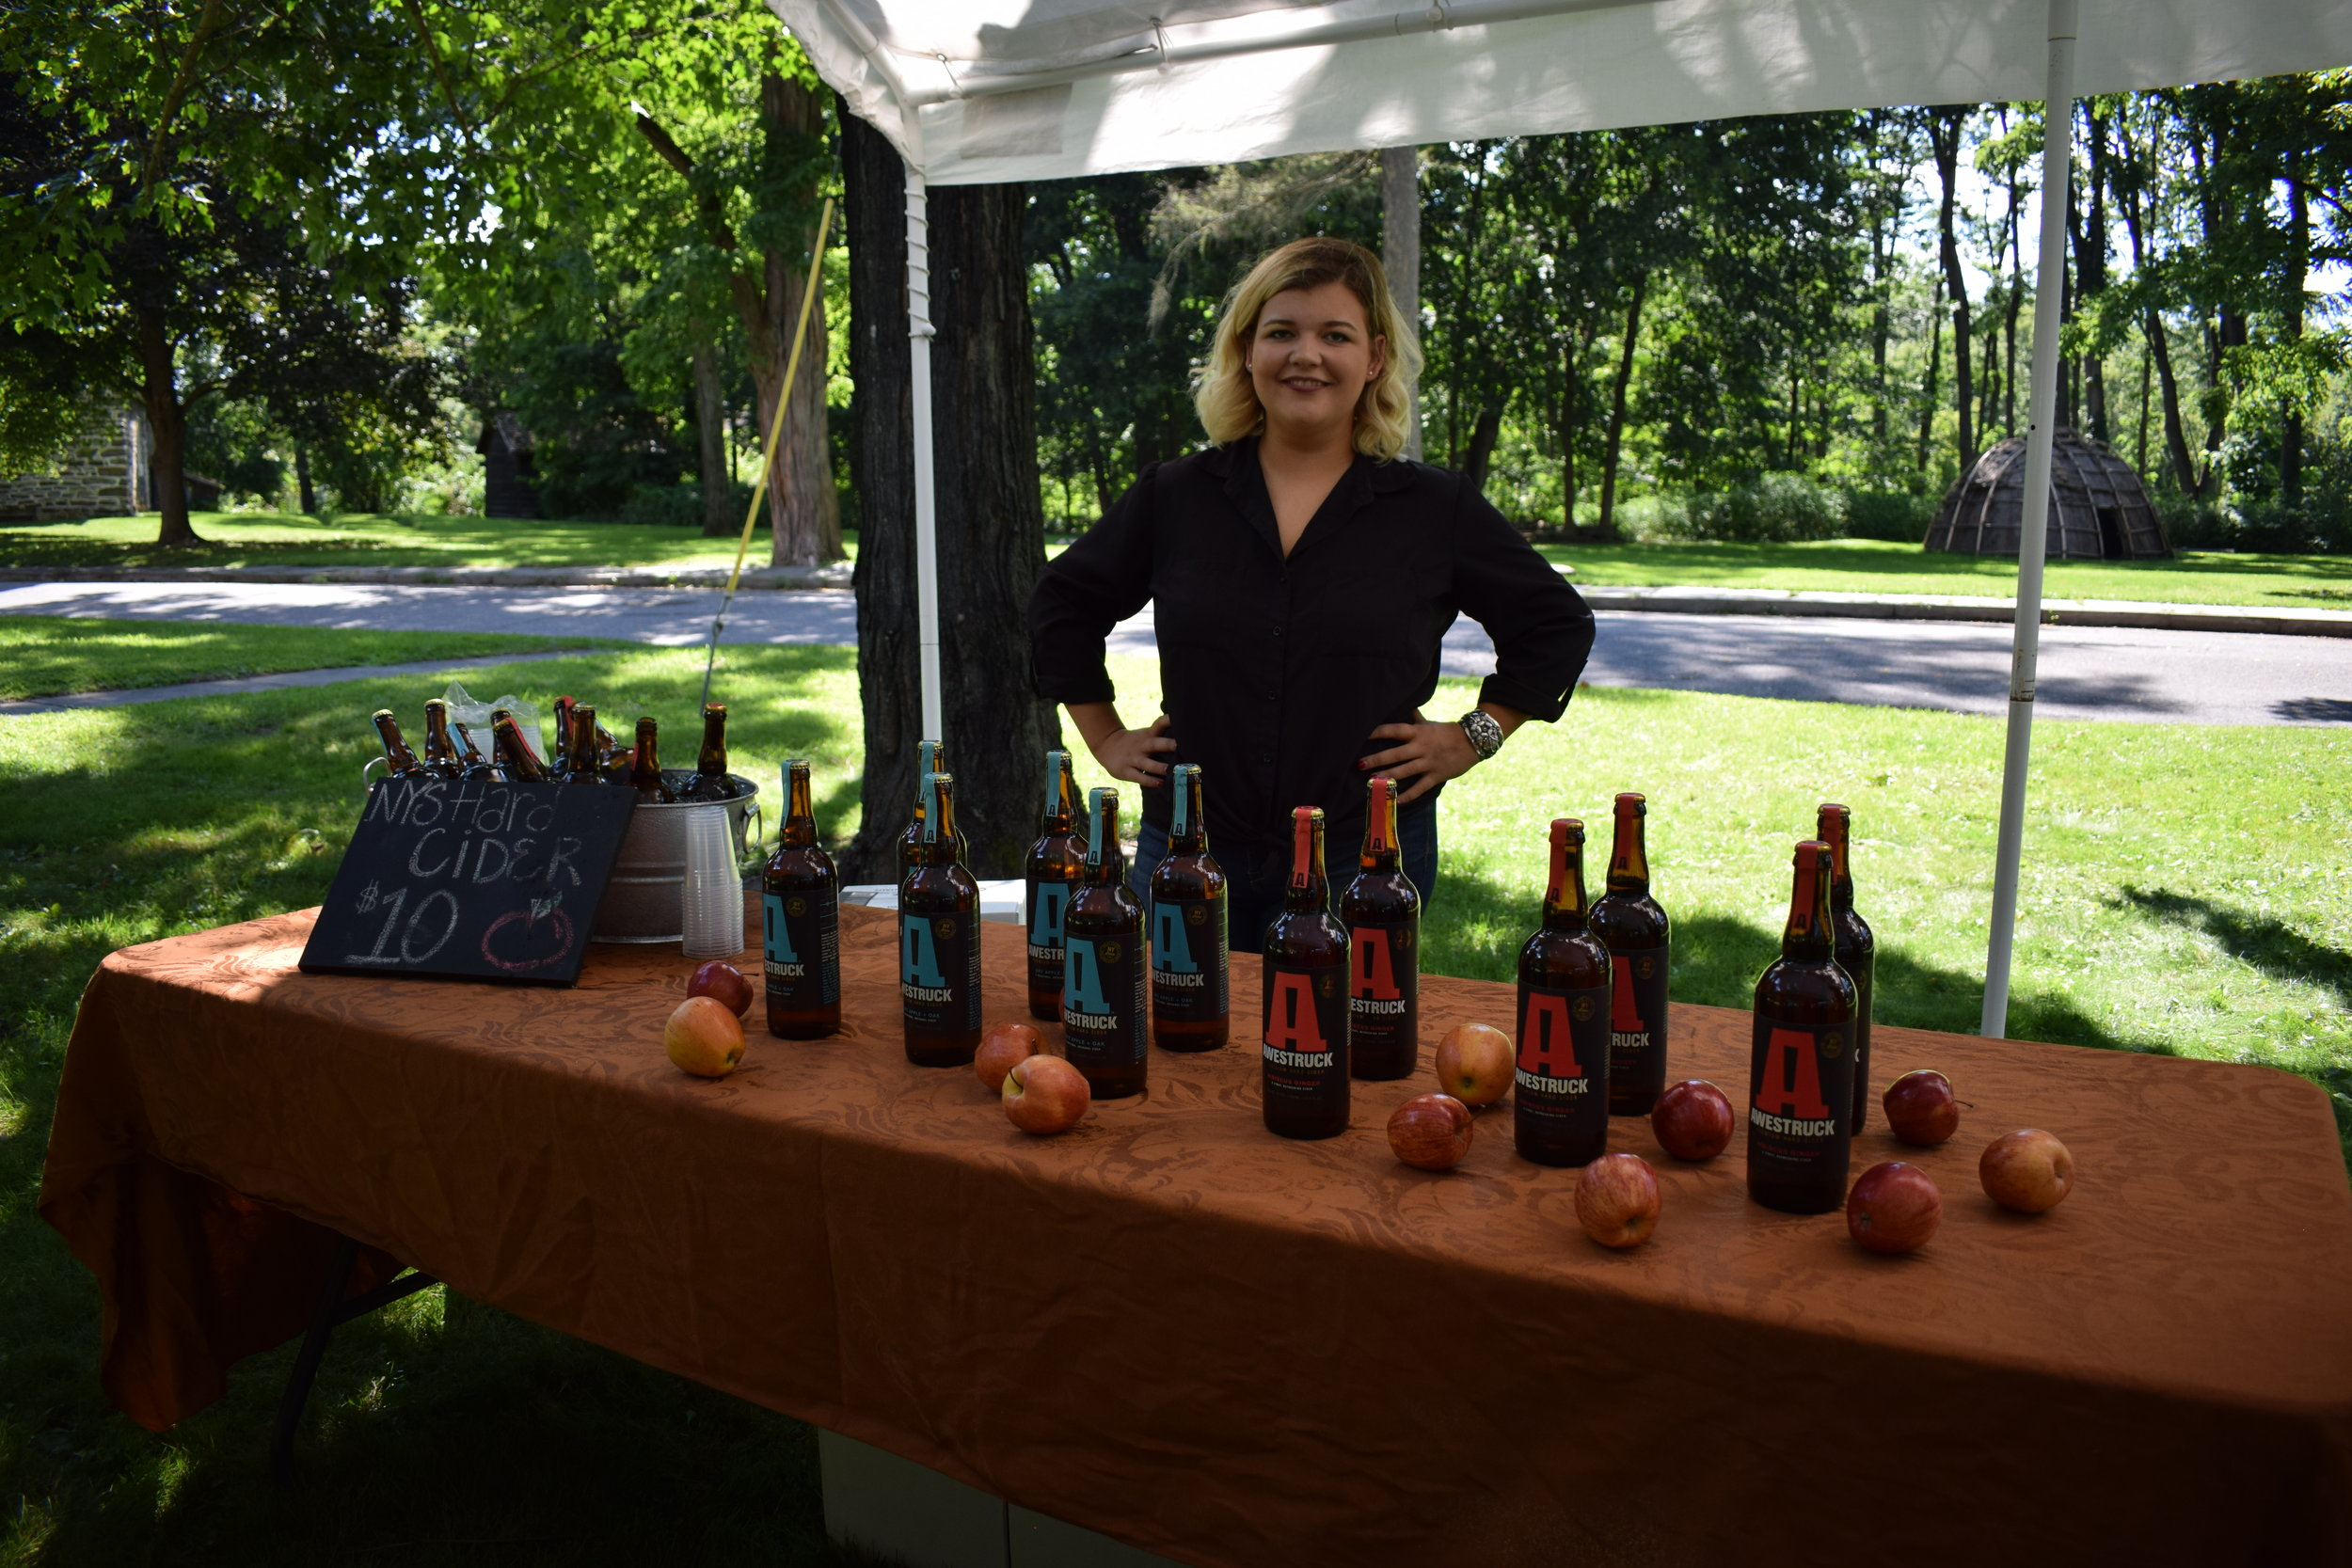 A hard cider tasting with Awestruck Ciders